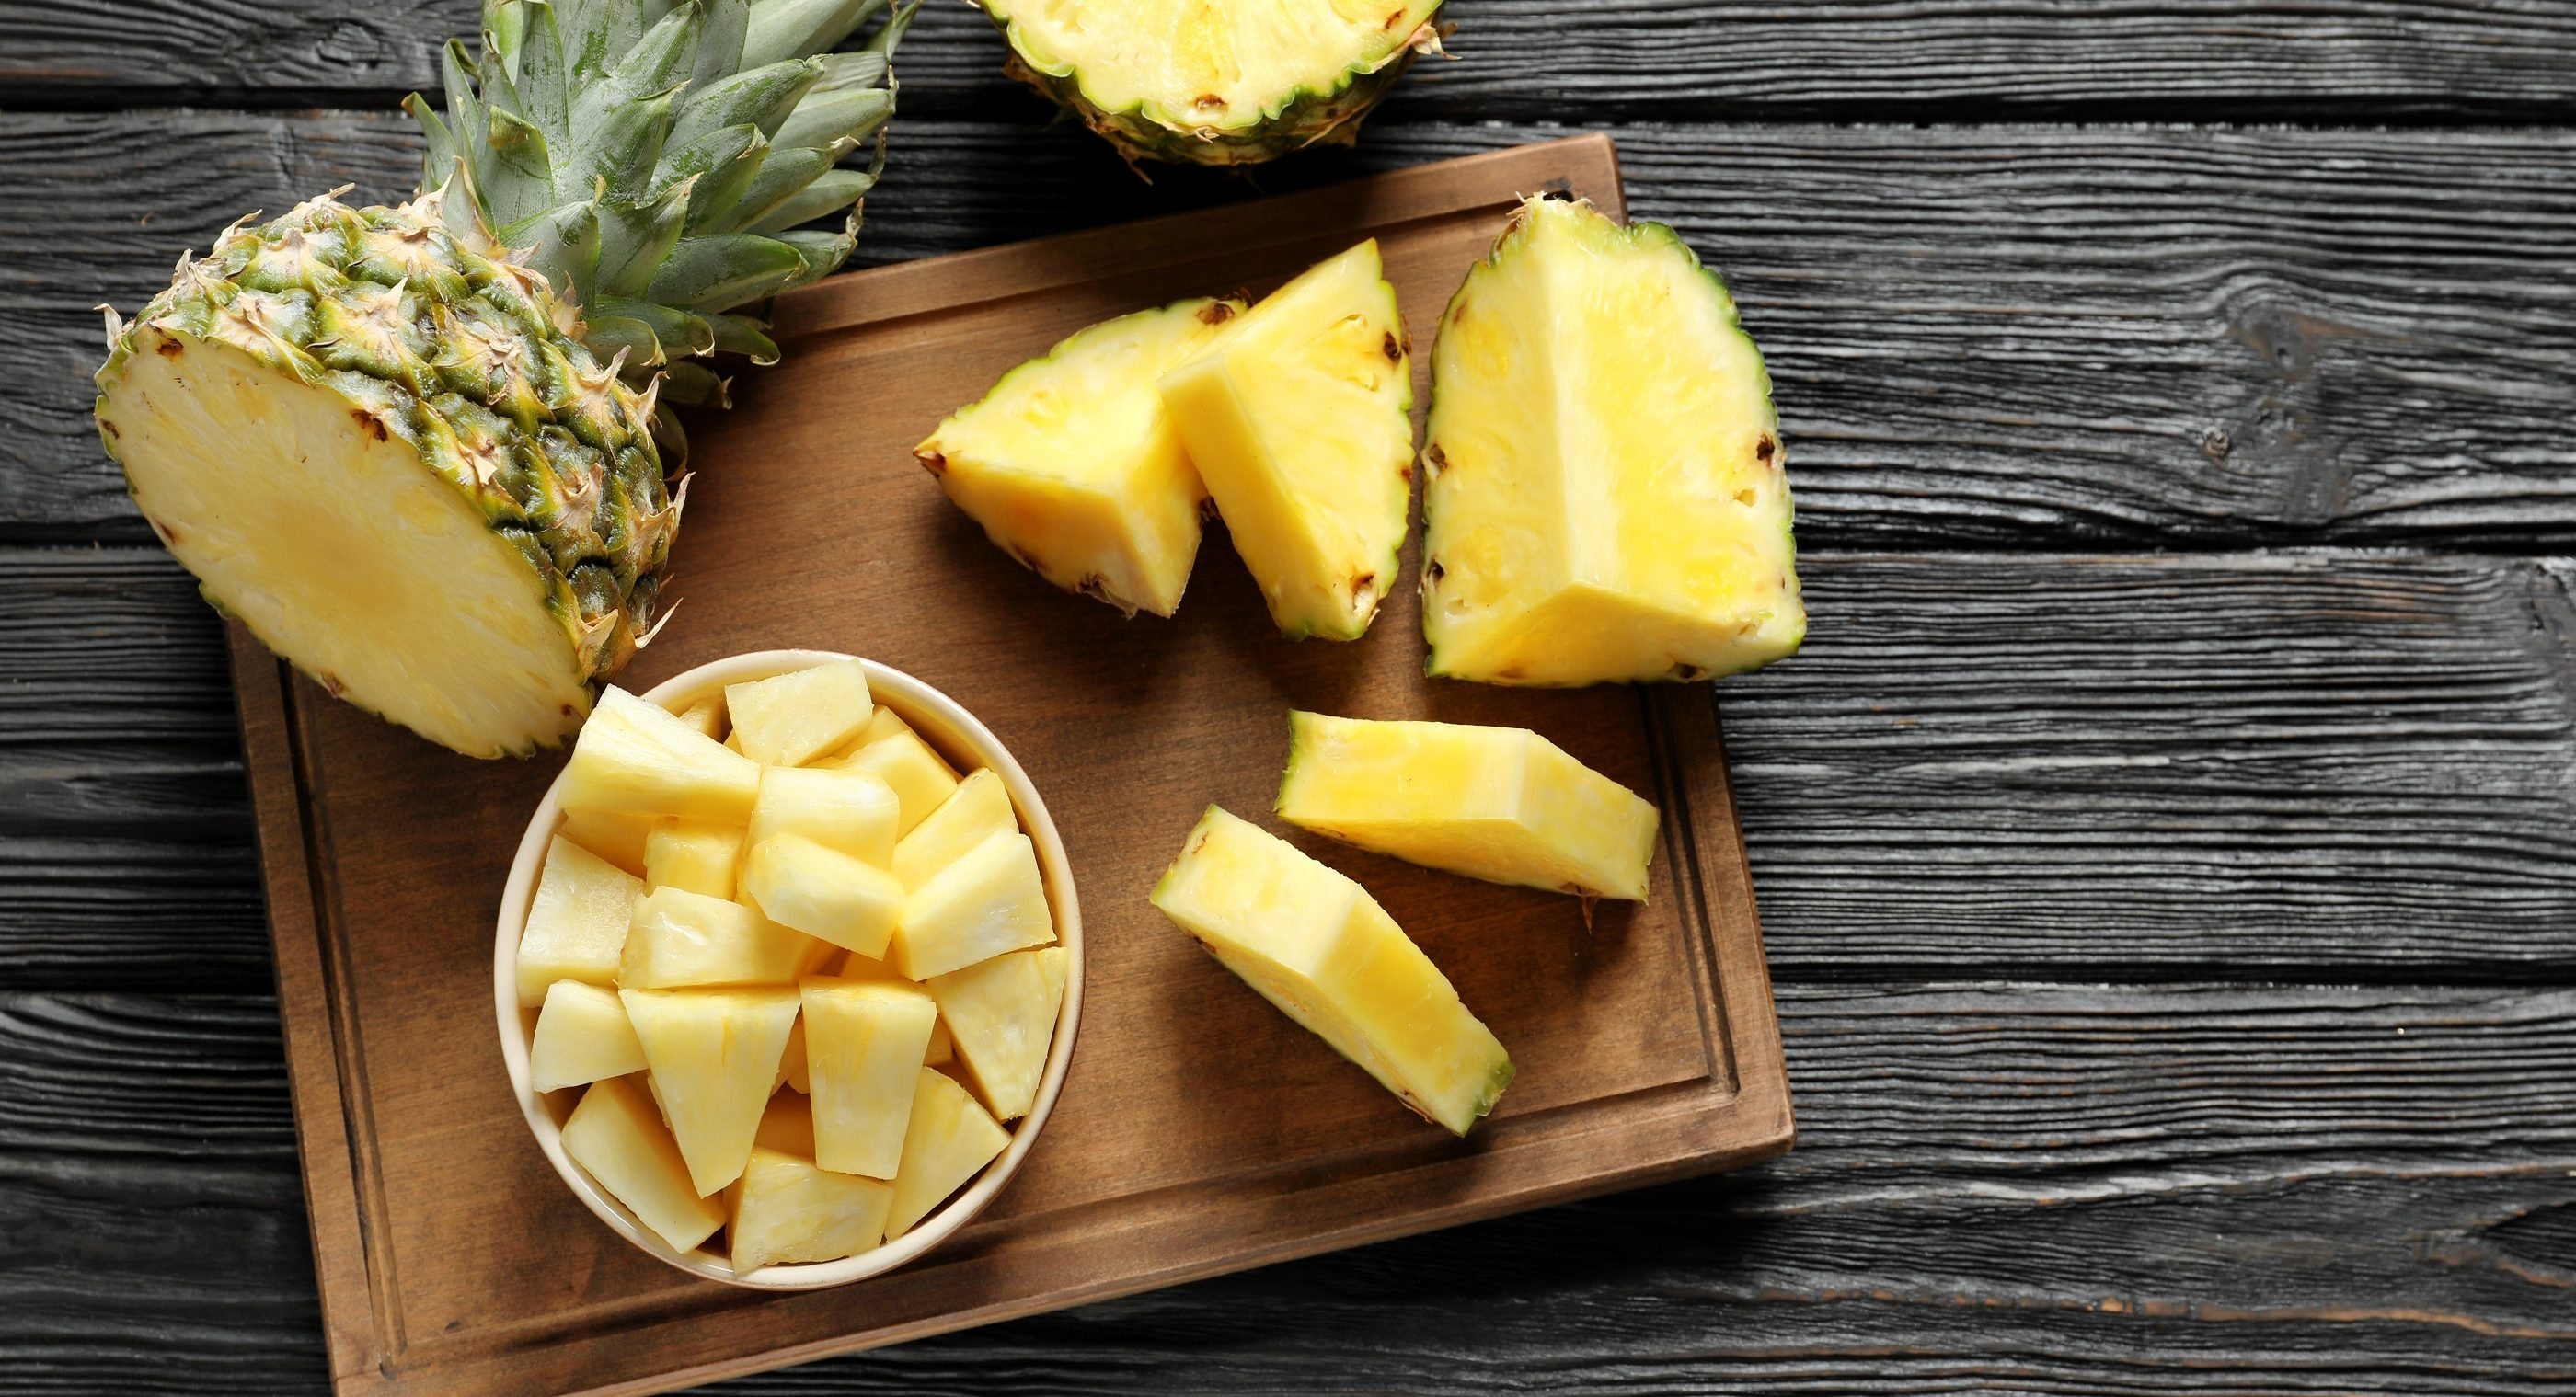 Pineapple supplements.